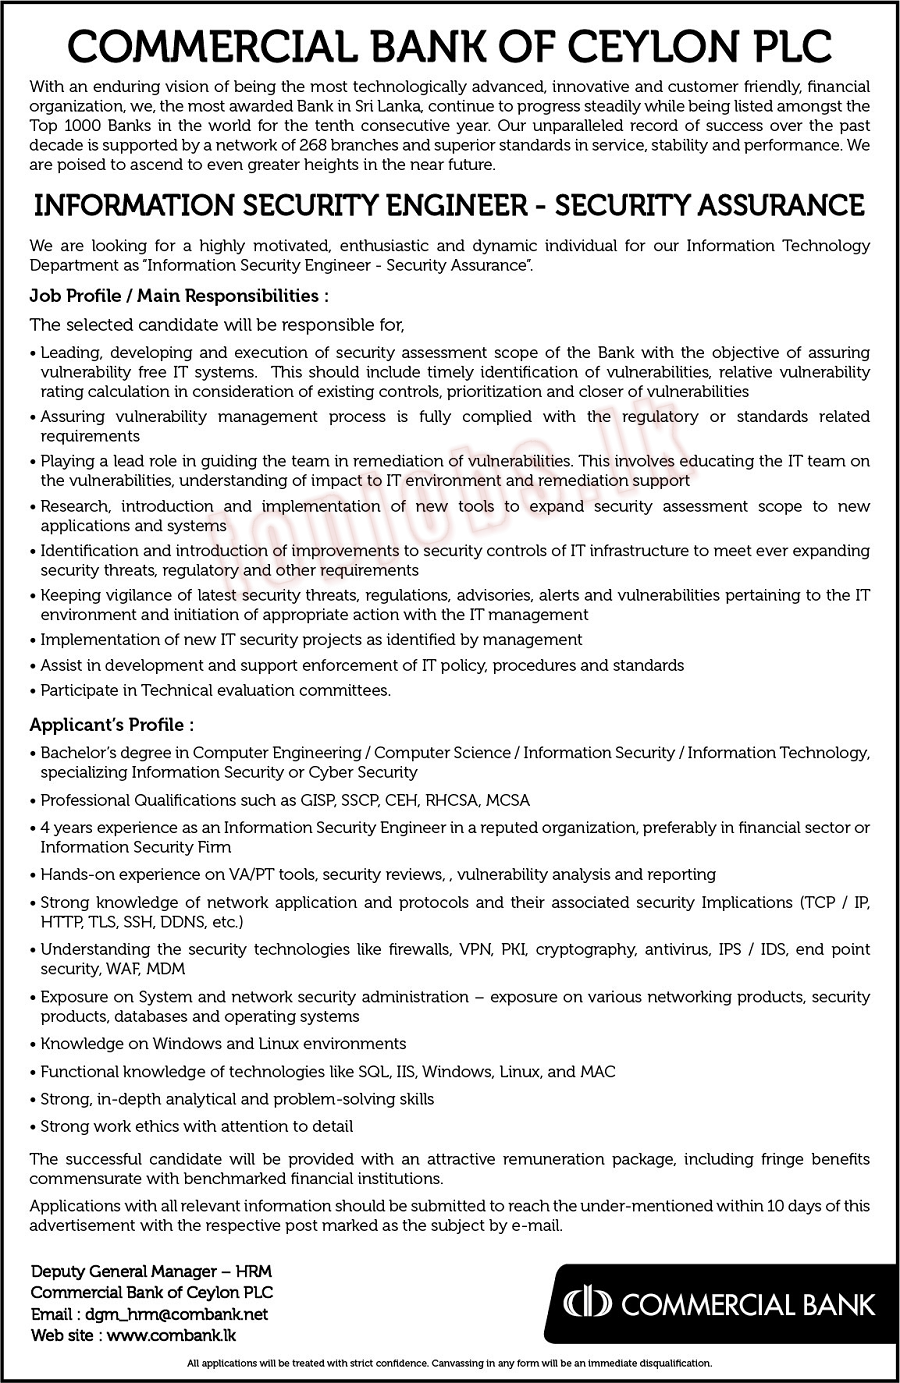 Information Security Engineer - Security Assurance